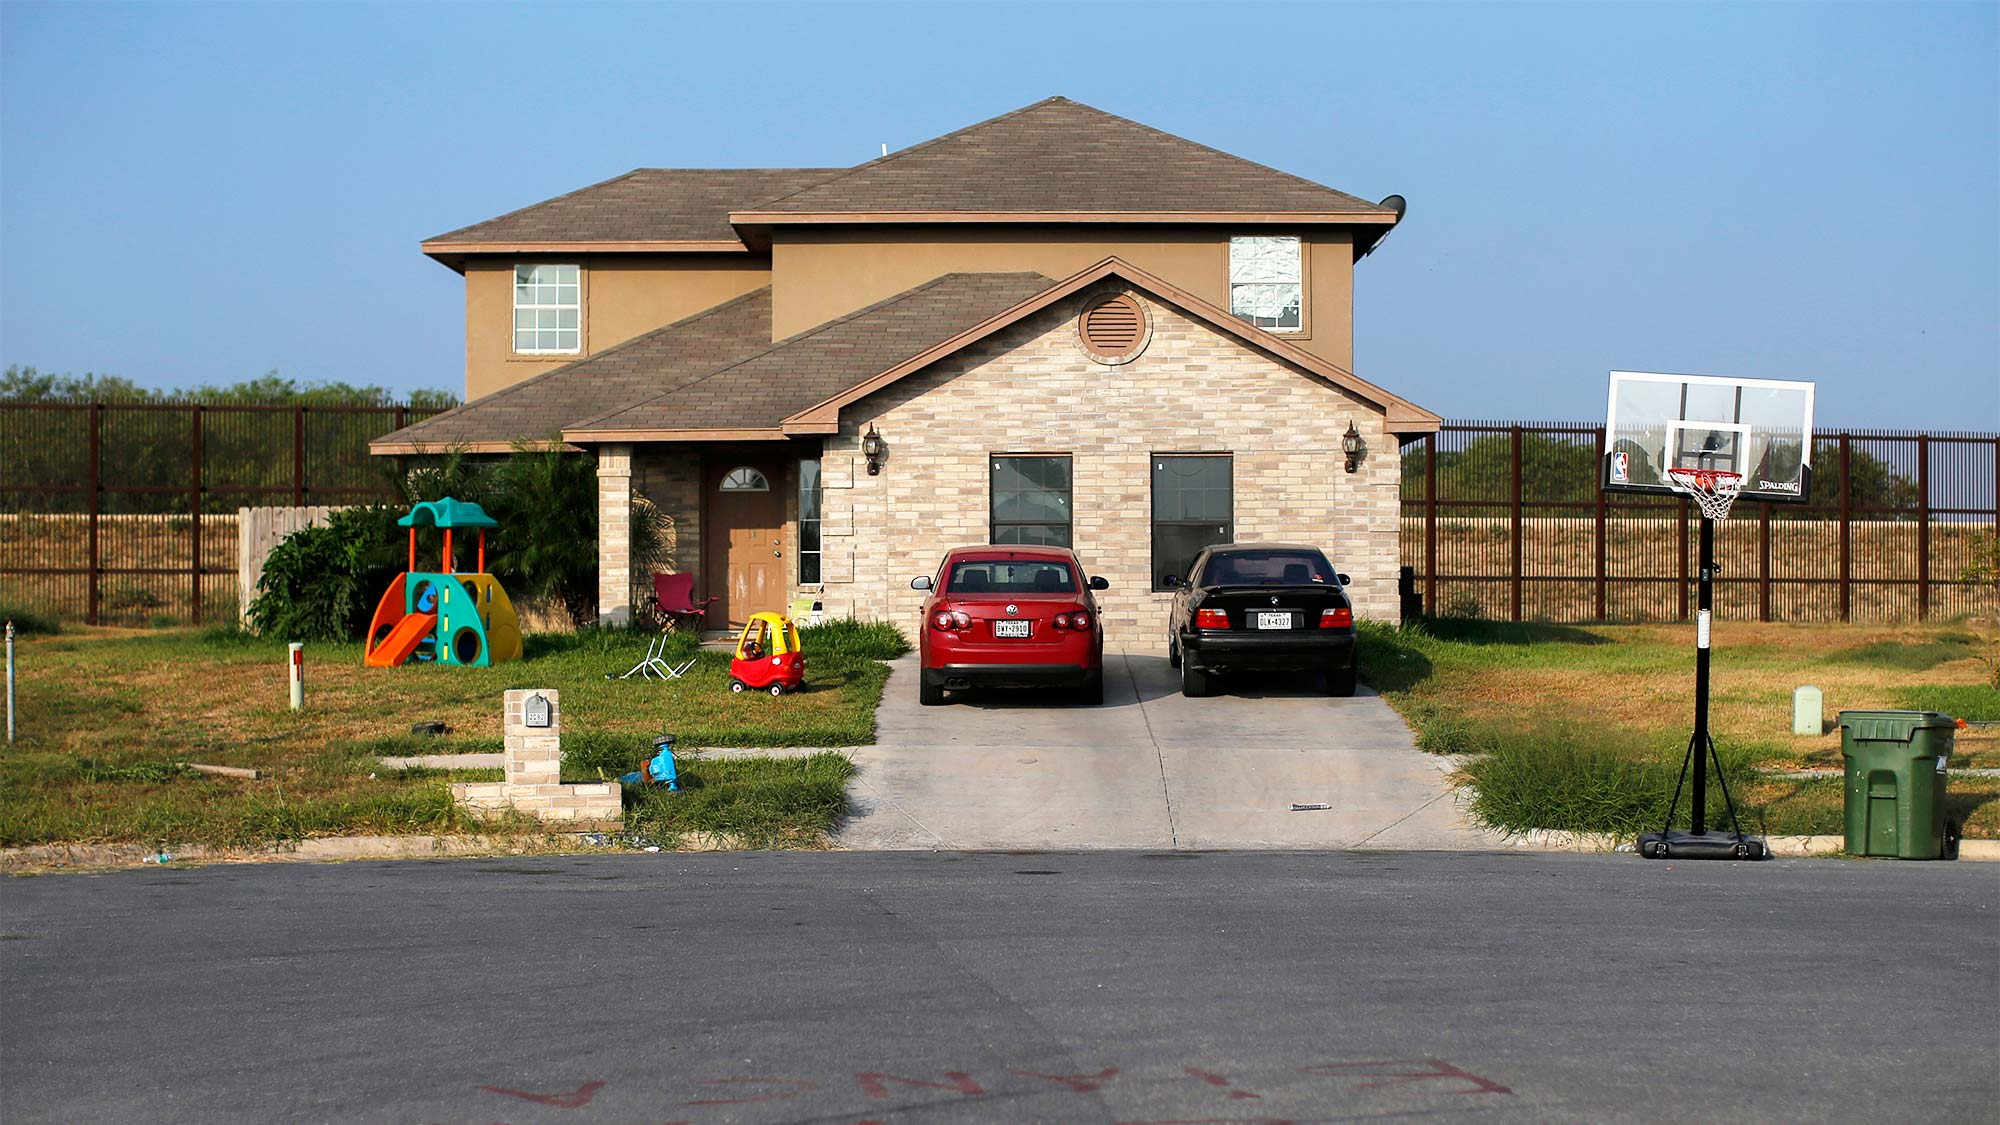 Home along the border fence in Brownsville, TX